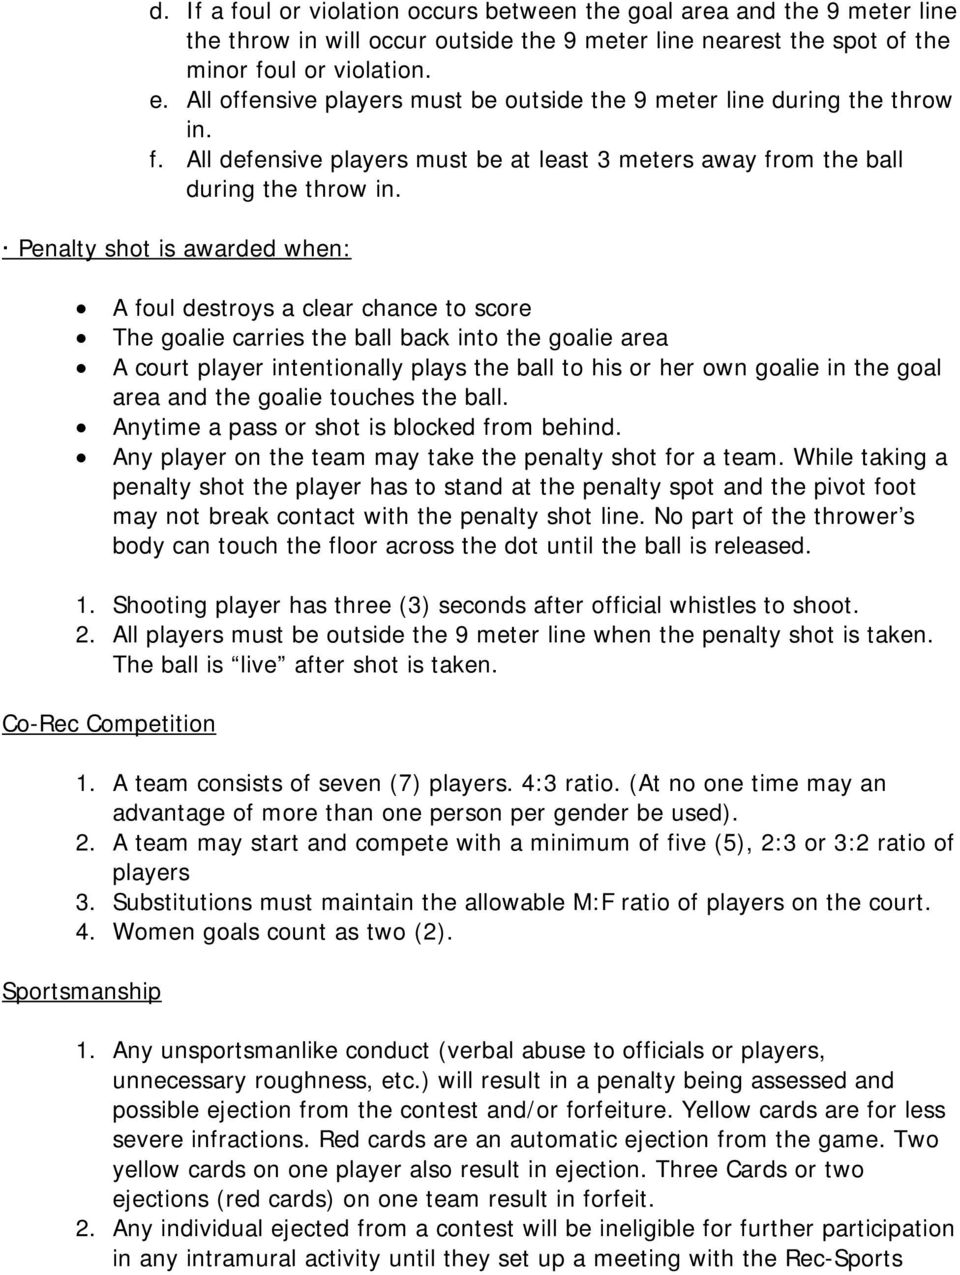 Penalty shot is awarded when: A foul destroys a clear chance to score The goalie carries the ball back into the goalie area A court player intentionally plays the ball to his or her own goalie in the